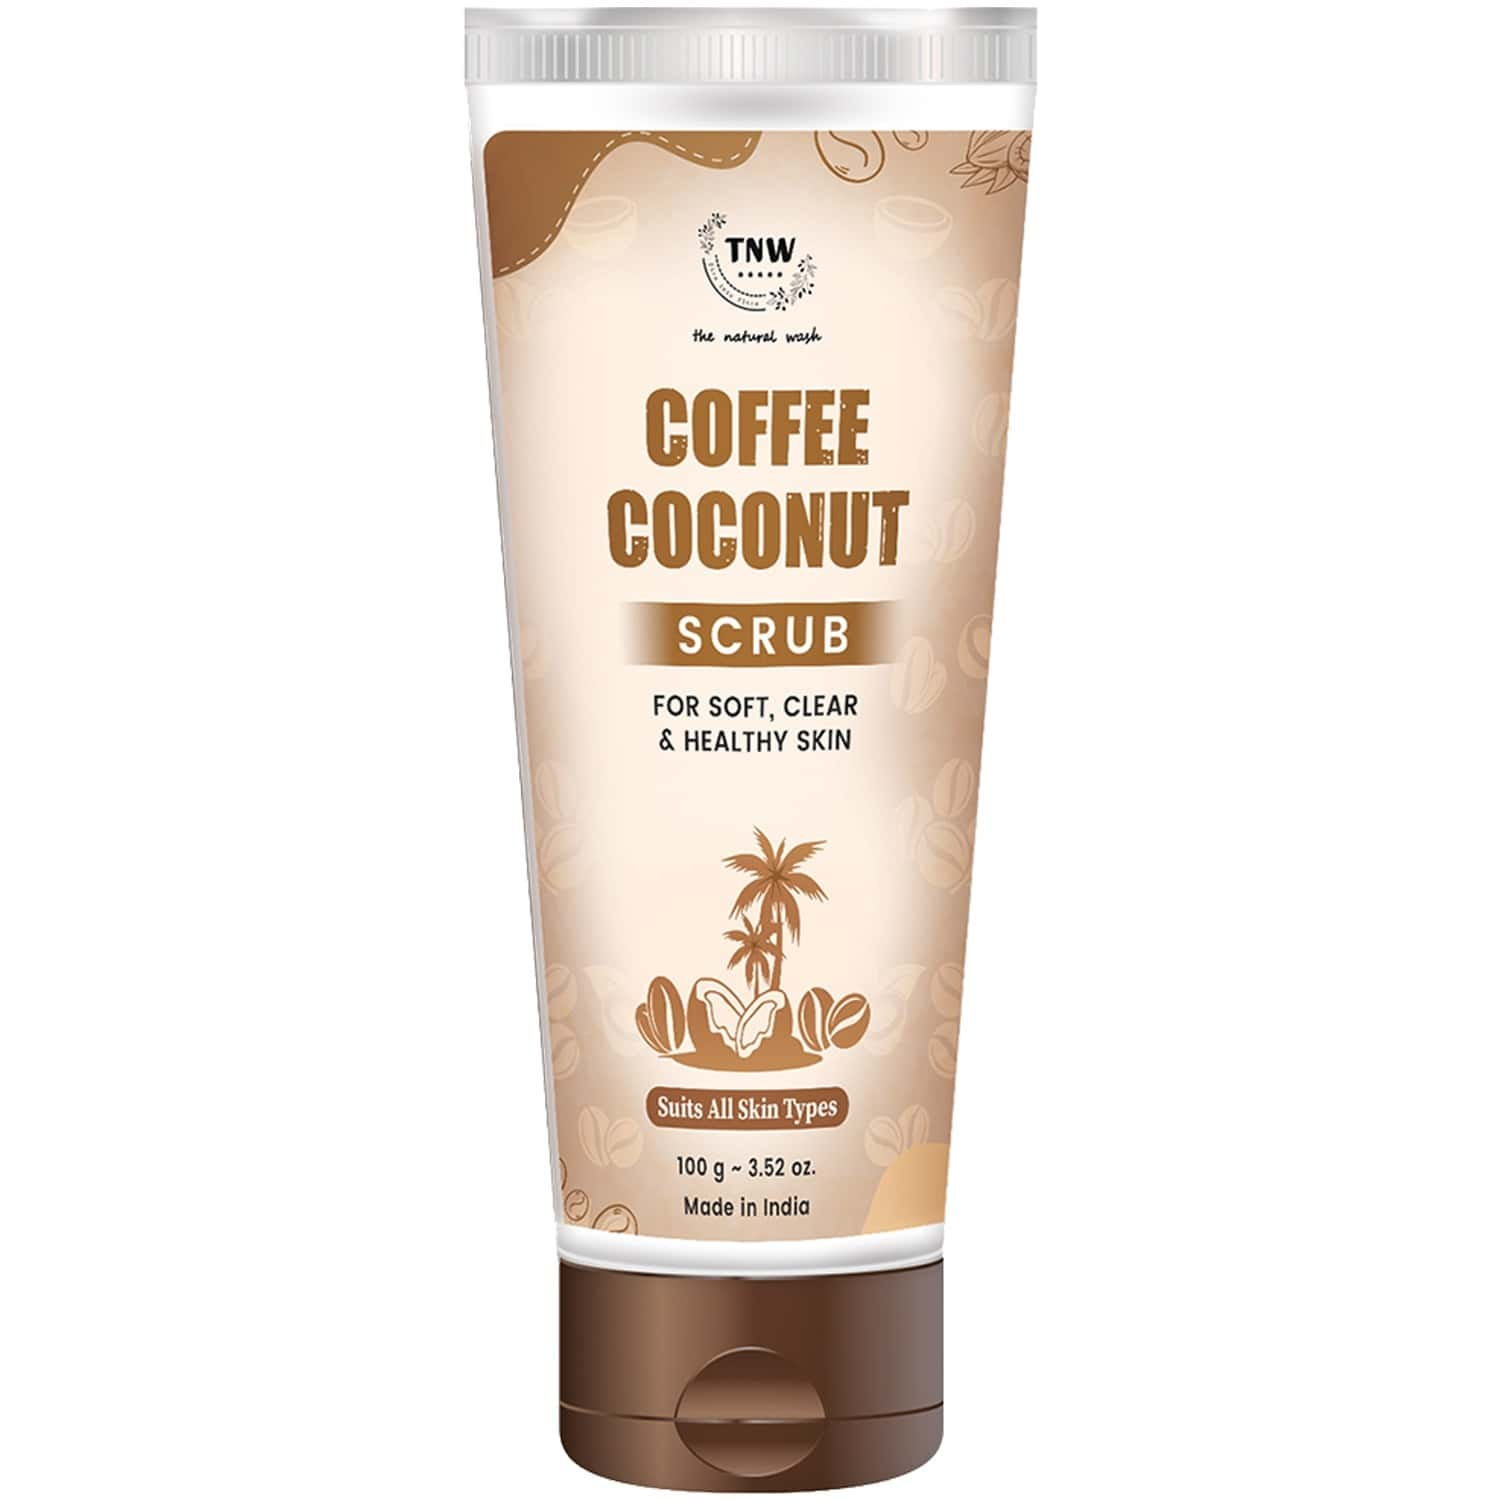 Tnw- The Natural Wash Coffee Coconut Scrub For Soft Clear And Healthy Skin - 100 Gm